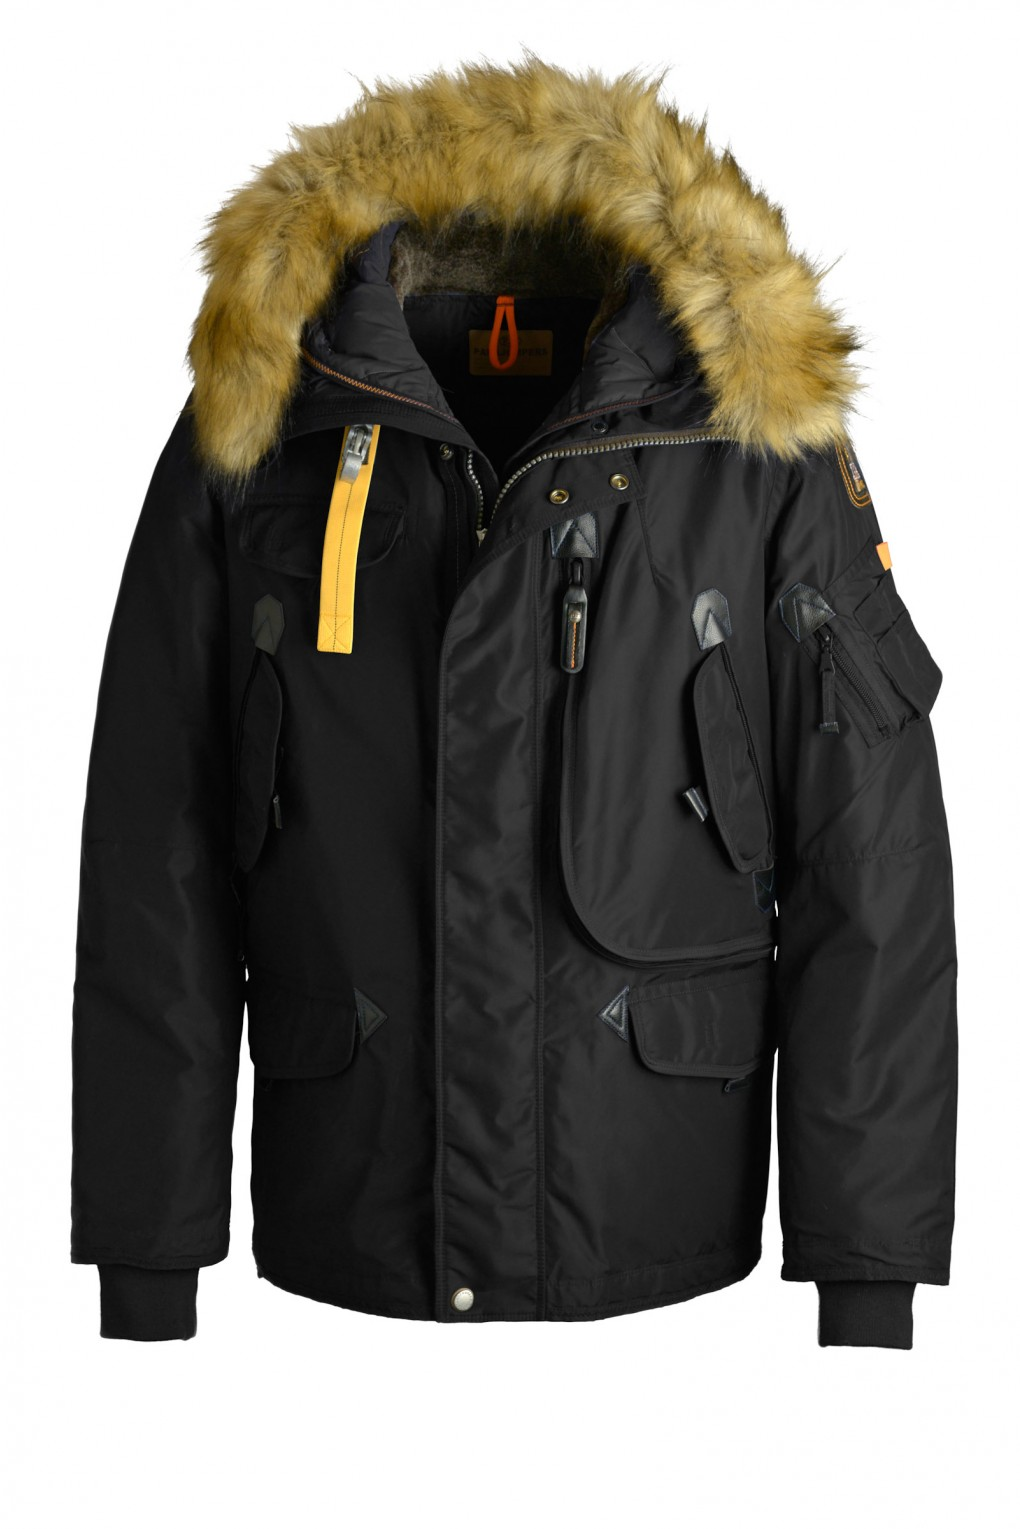 parajumpers RIGHT HAND ECO man outerwear Black